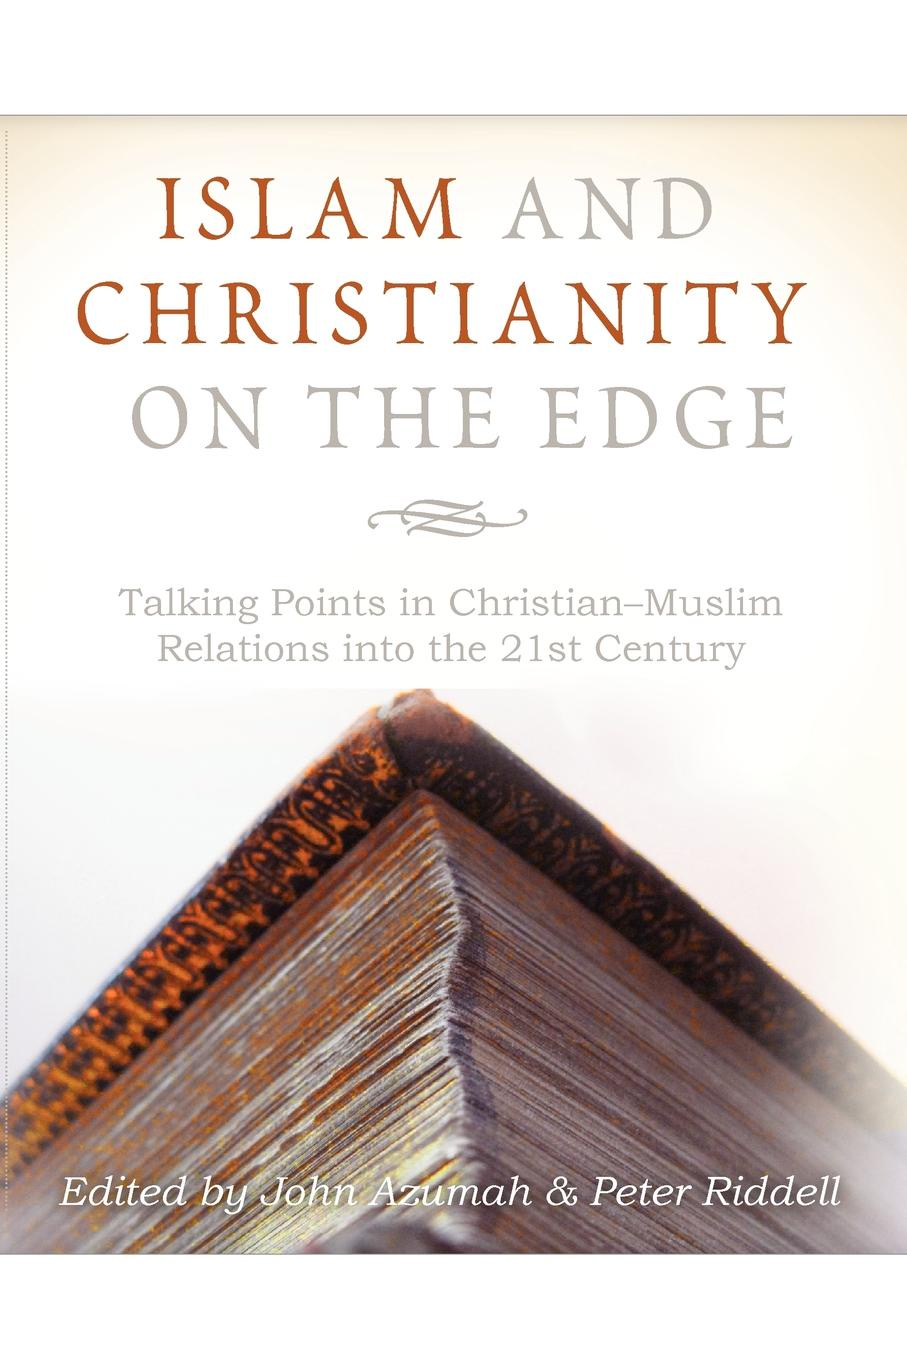 Islam and Christianity on the Edge. Talking Points in Christian-Muslim Relations Into 21st Century